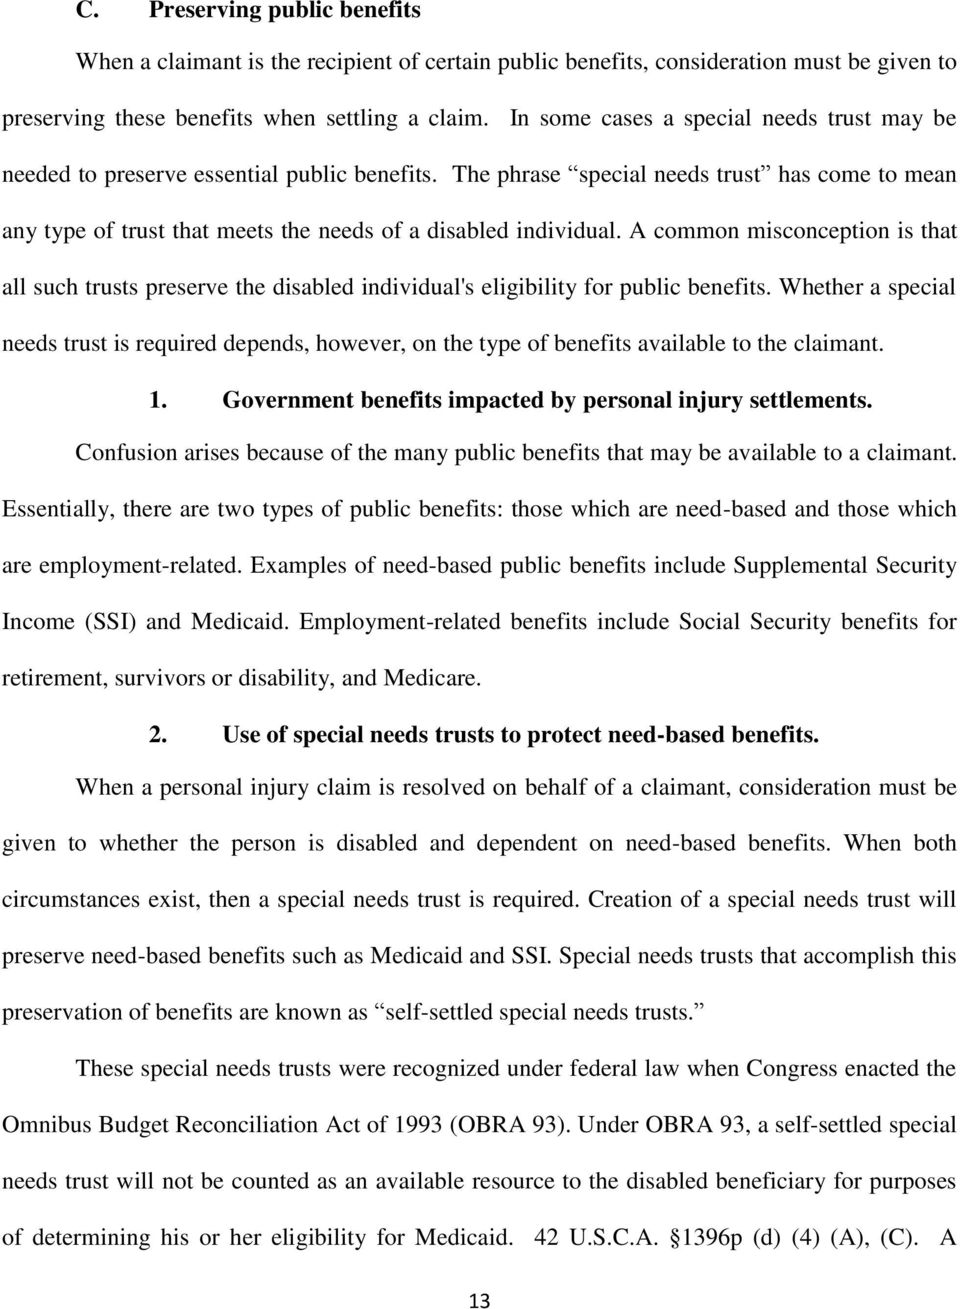 The phrase special needs trust has come to mean any type of trust that meets the needs of a disabled individual.